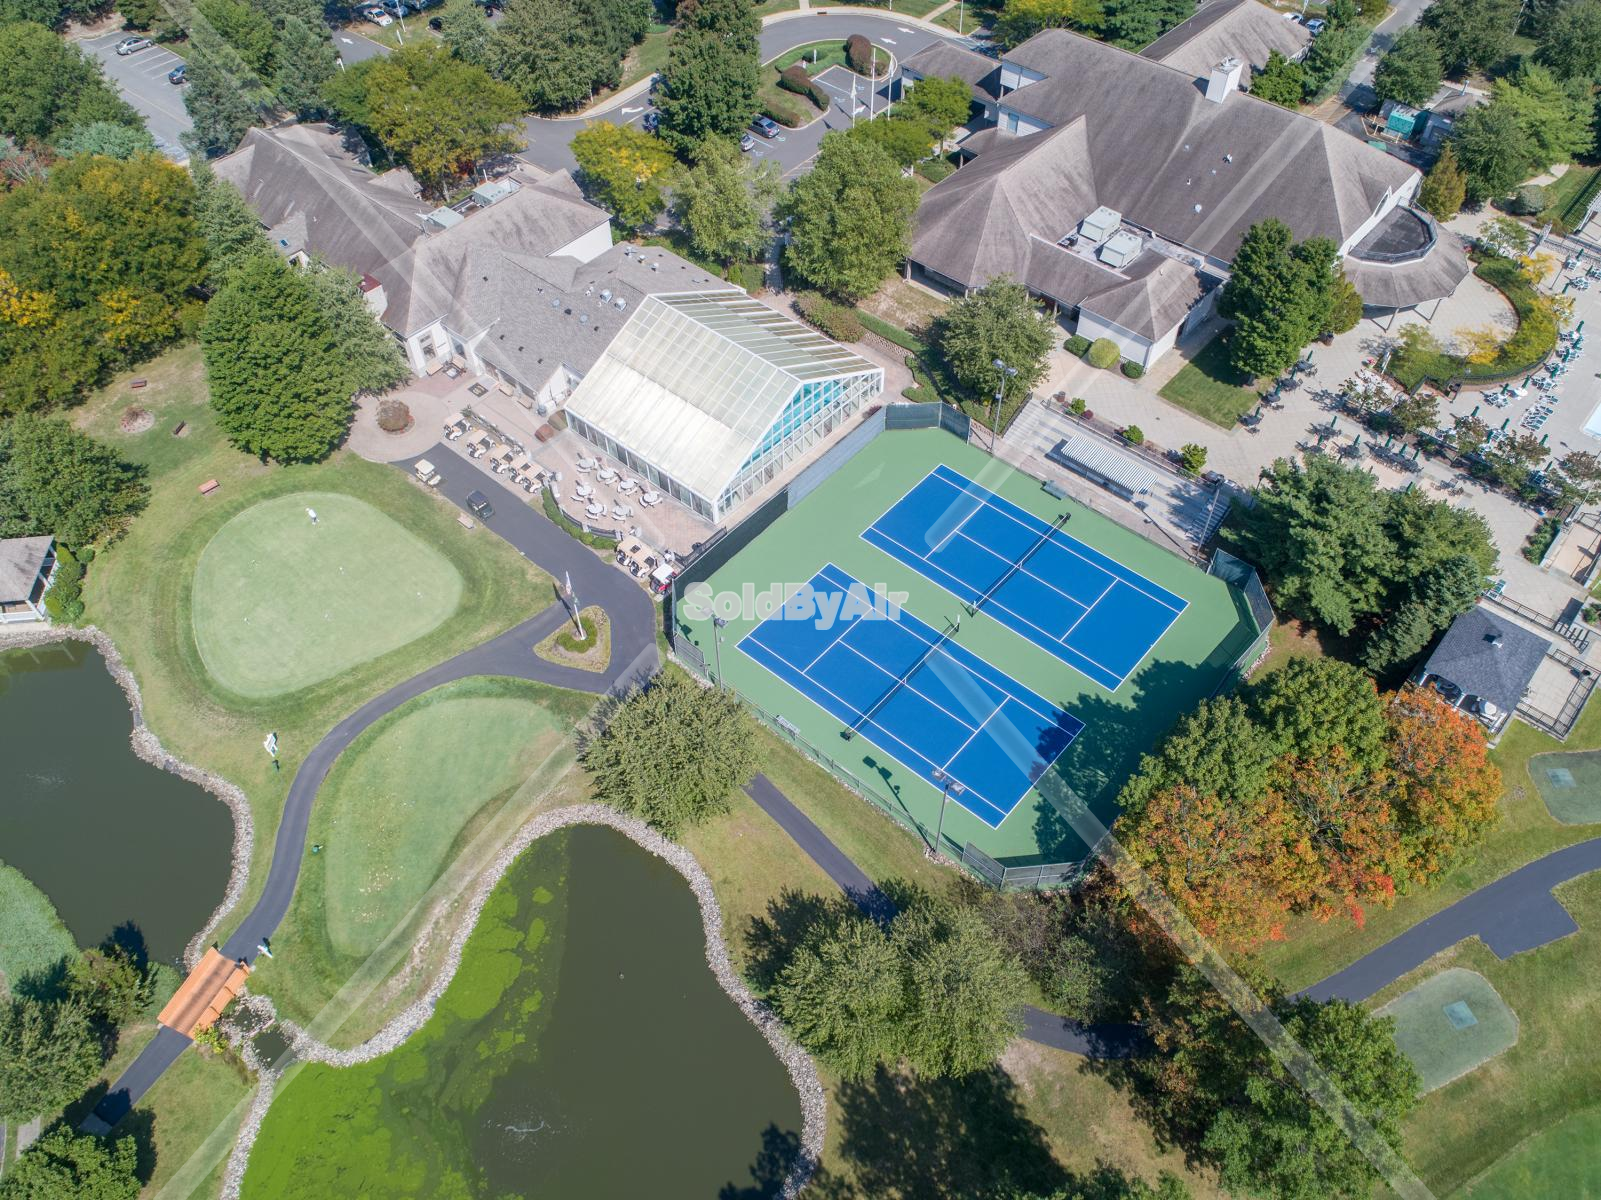 Drone Photo of The Fairways at Lakewood Amenities in Lakewood Township New Jersey